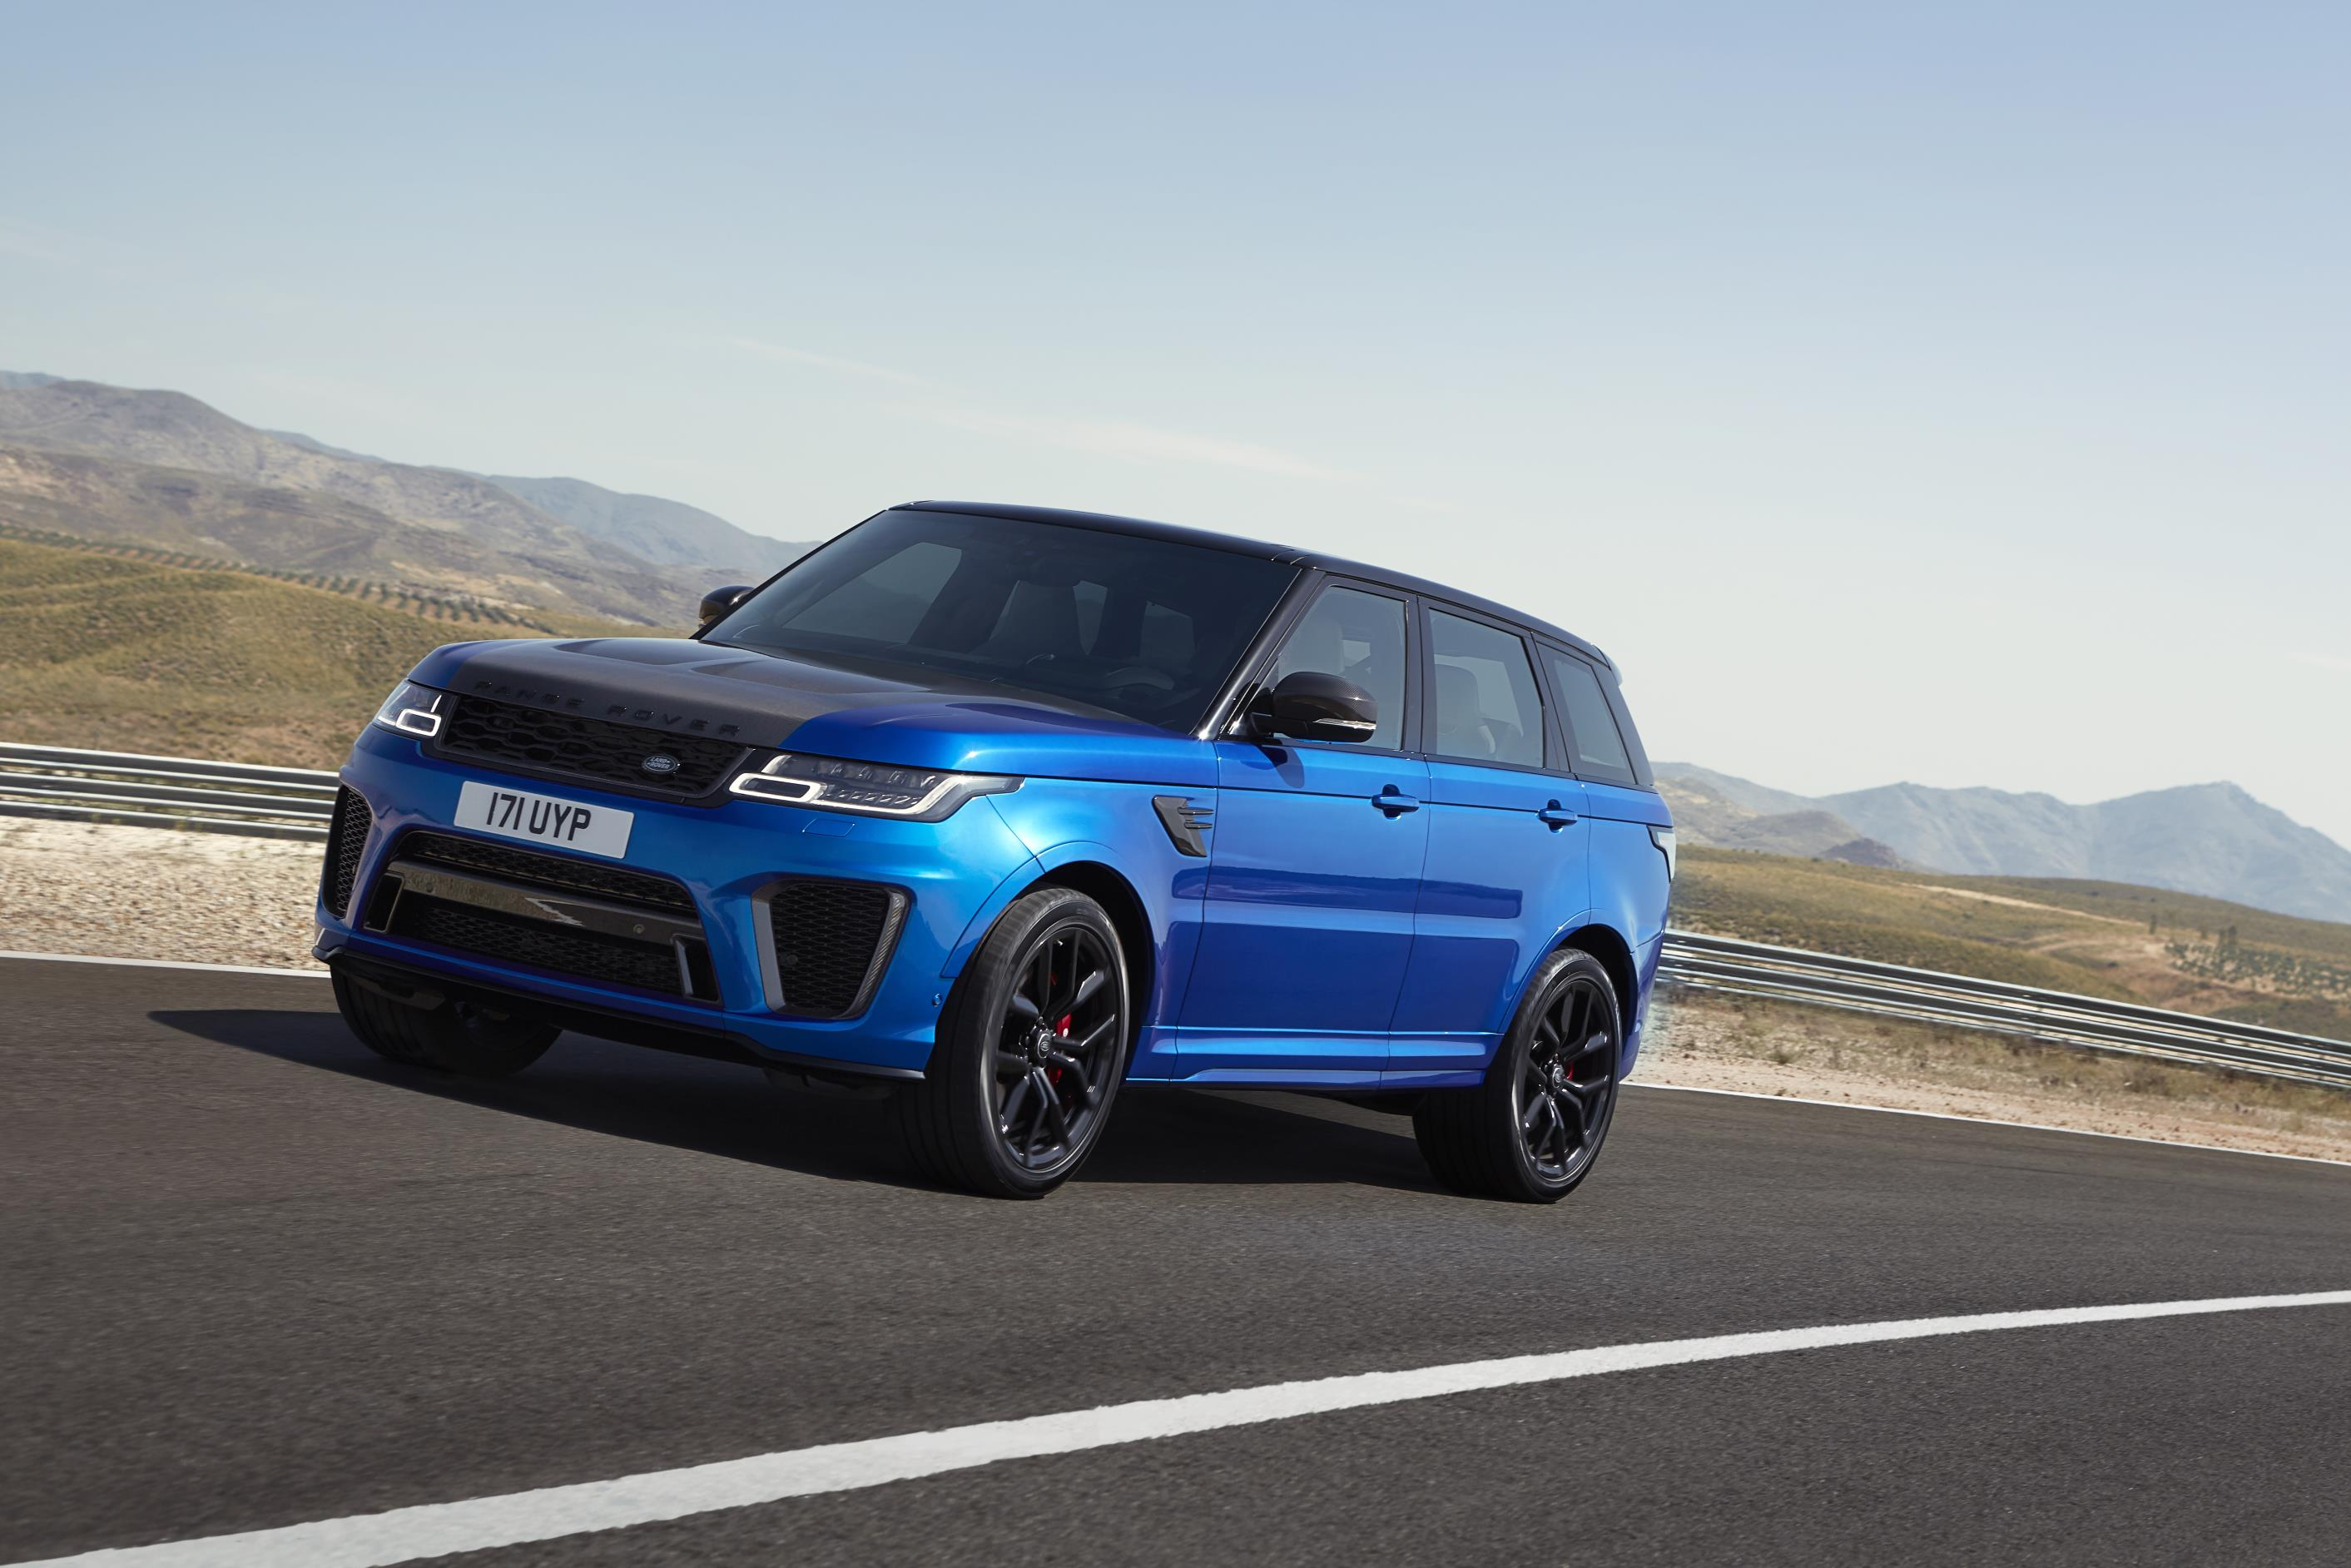 The Revamped Range Rover Sport Now Has An Impressive Electric Hybrid Option